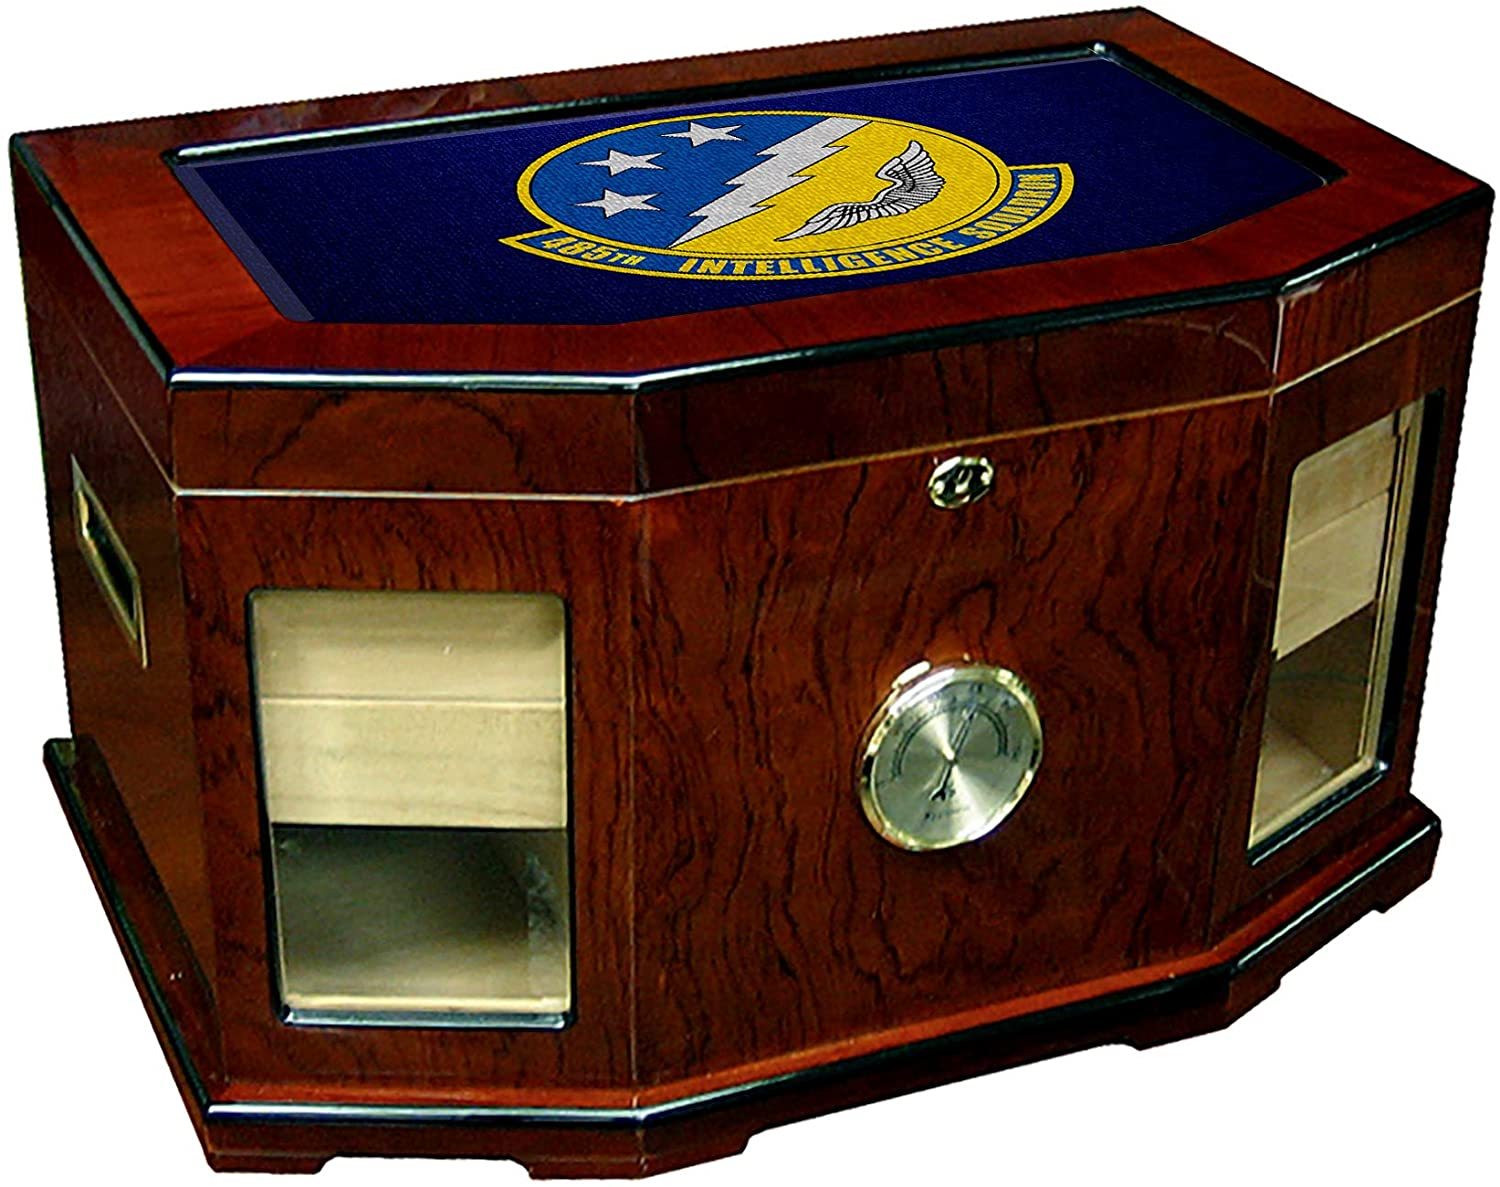 Large Premium Desktop Humidor - Glass Top -US Air Force 485th Intelligence Squadron